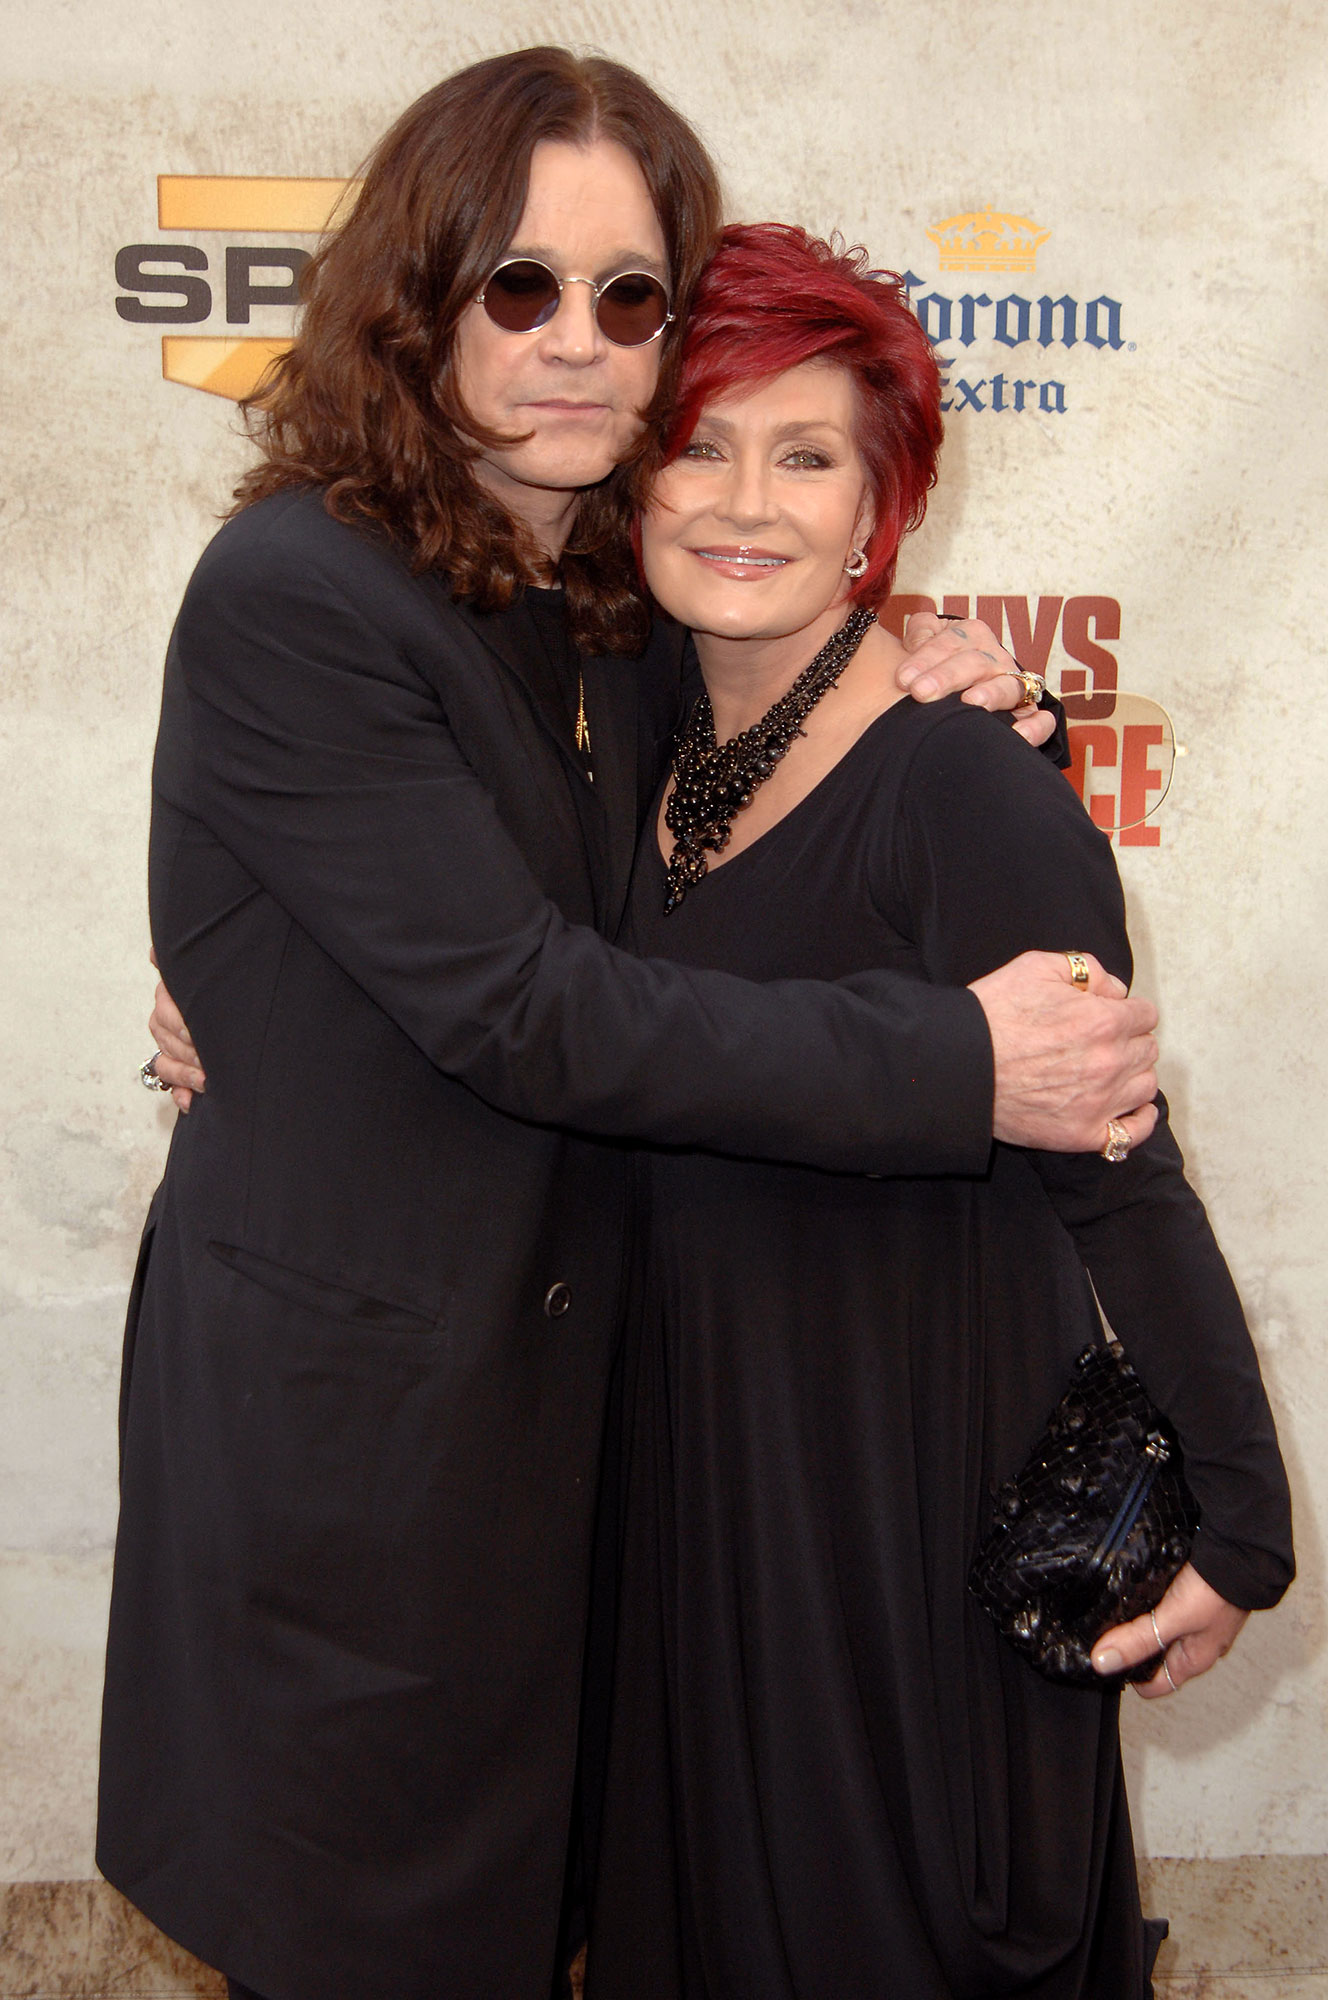 Ozzy Osbourne Says He Regrets Cheating On Wife Sharon In The Past